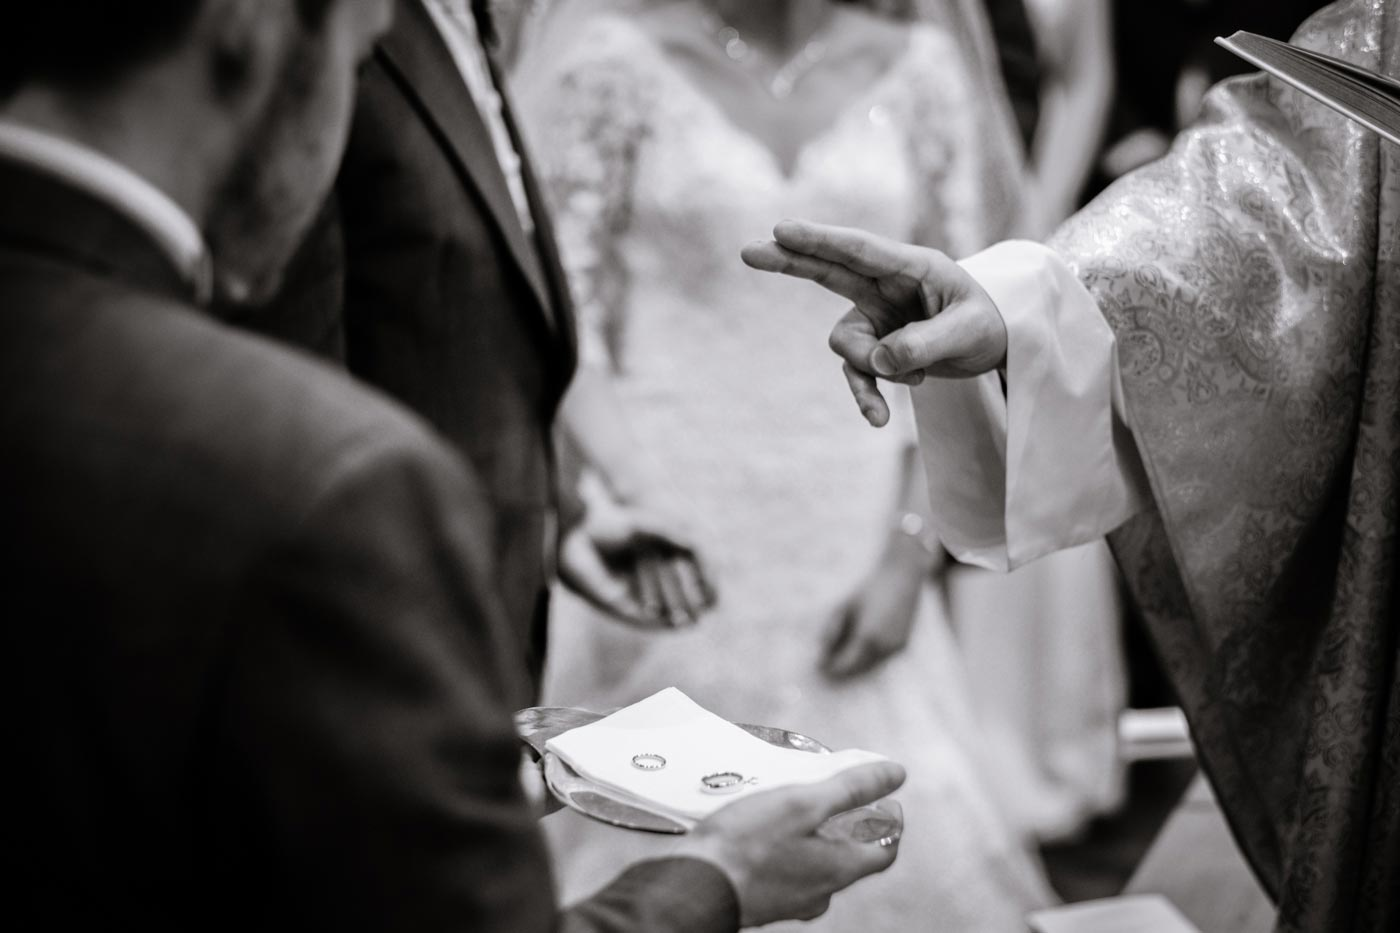 Blessing of the wedding rings